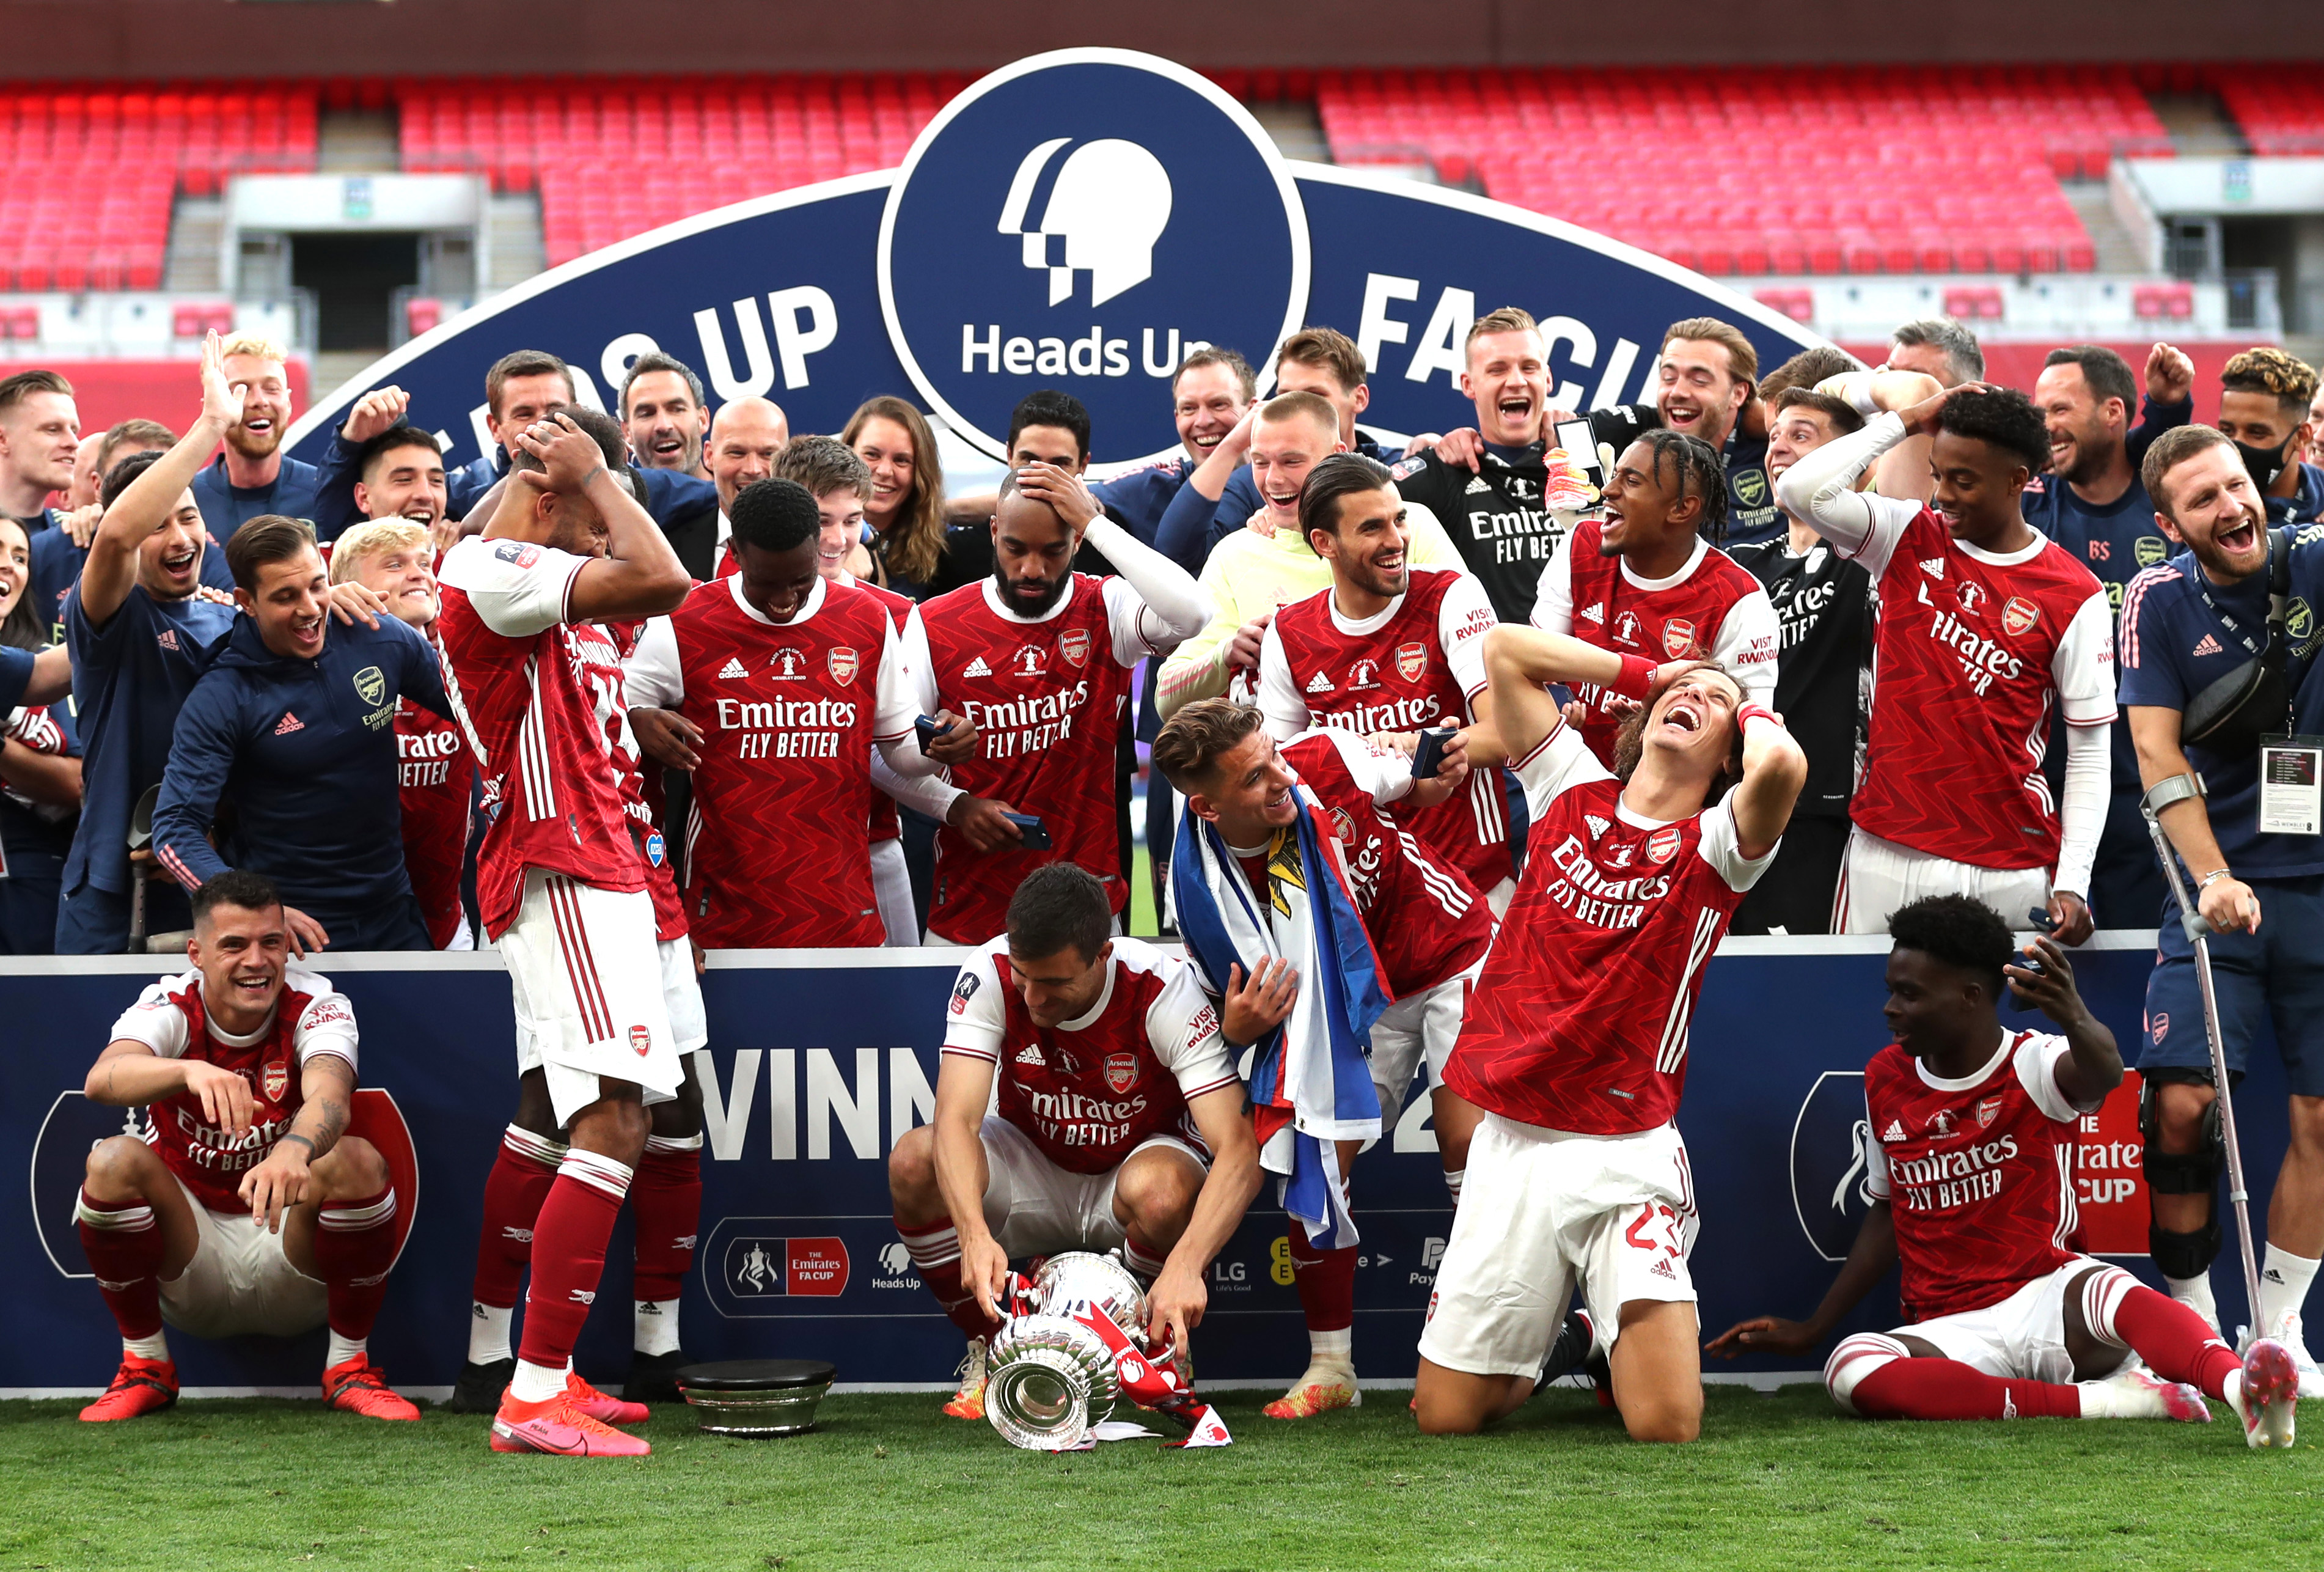 A Complete Arsenal 2019/20 Season Review - FA Cup winners.